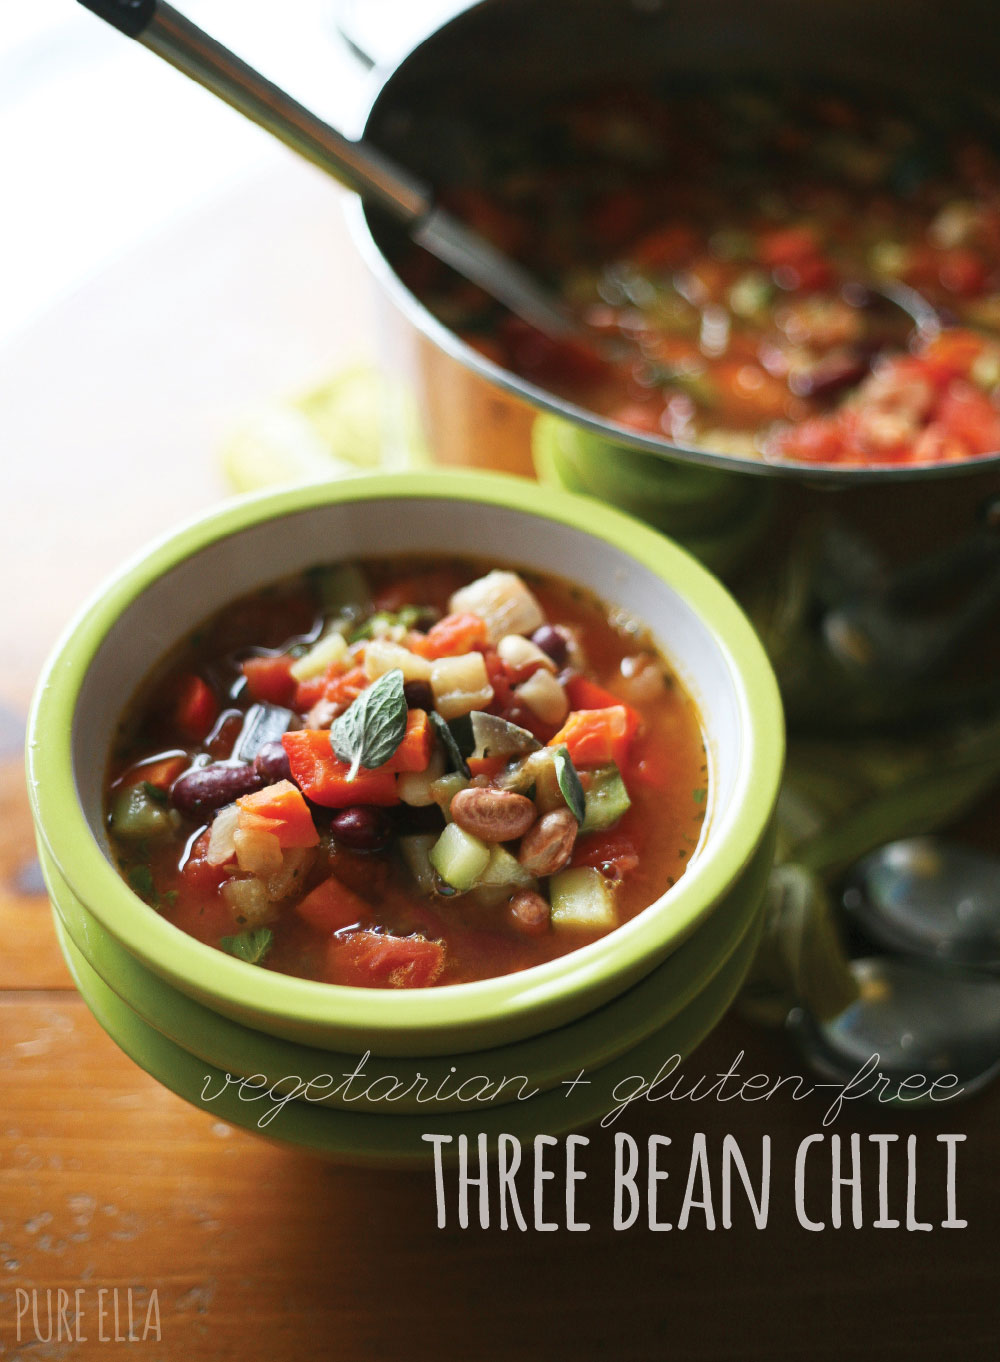 Pure-Ella-Vegetarian-Gluten-free-Three-Bean-Chili